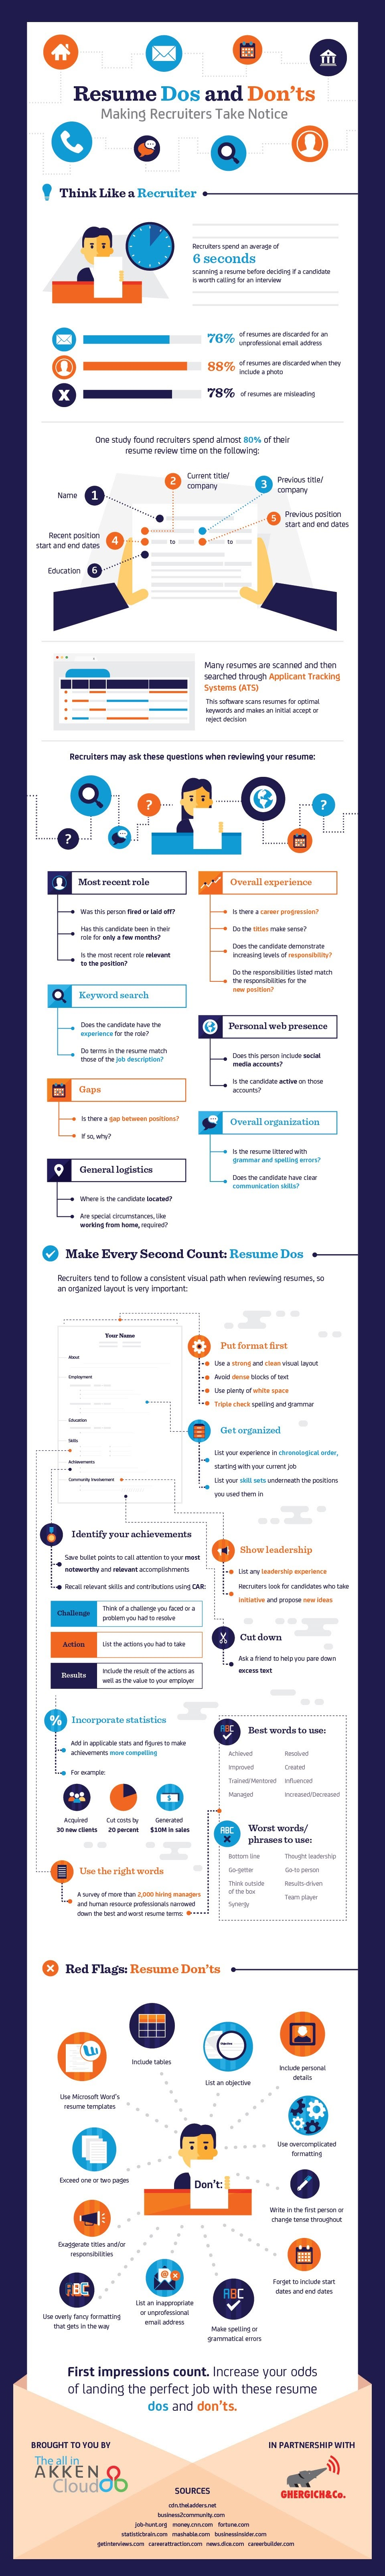 Resume Dos and Don'ts: Making Recruiters Take Notice - #infographic